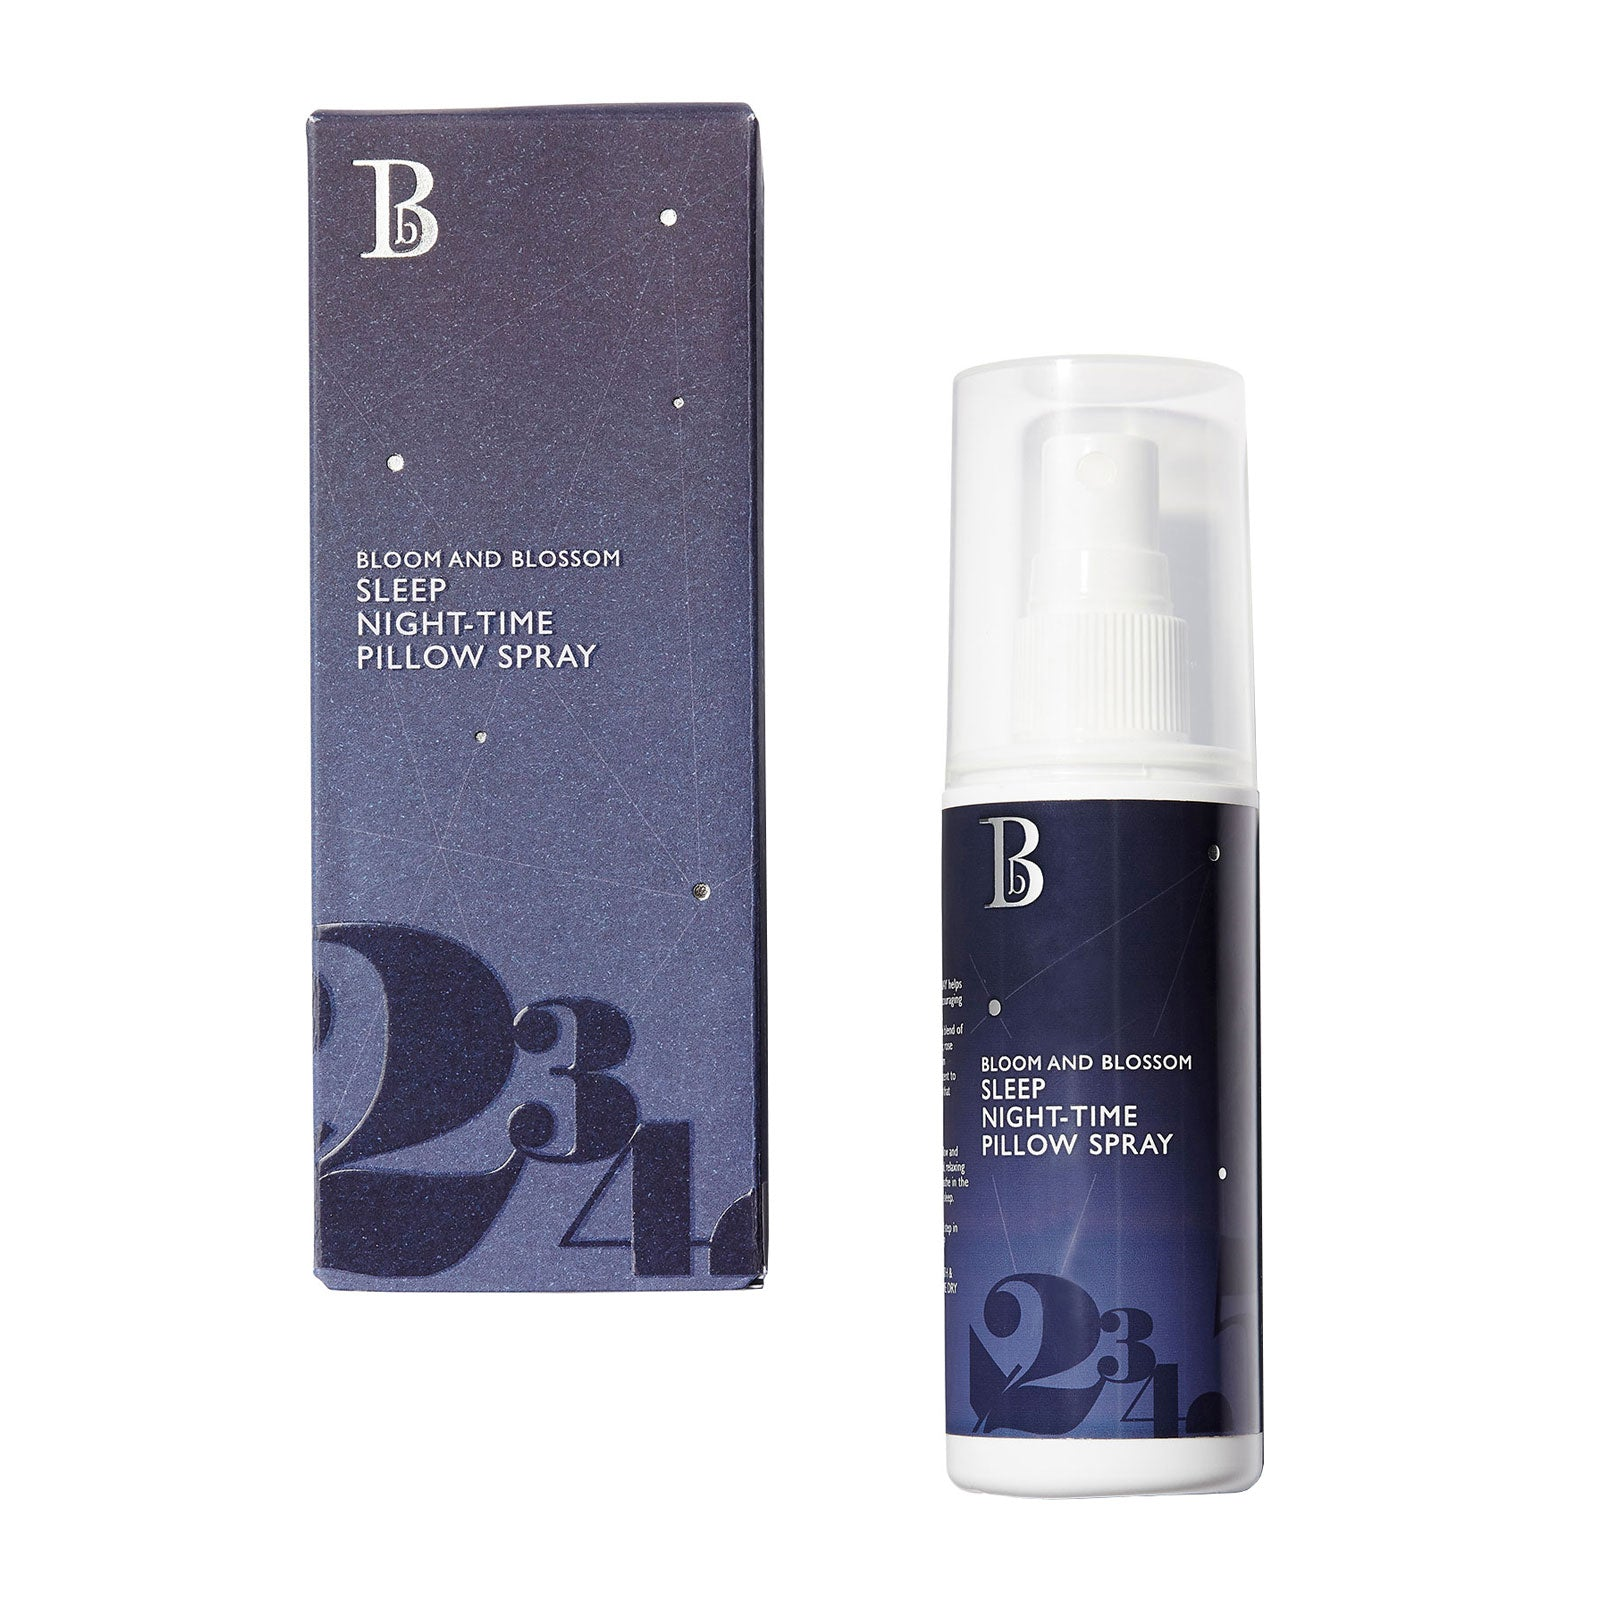 Bloom and Blossom Sleep Night-Time Pillow Spray 75ml